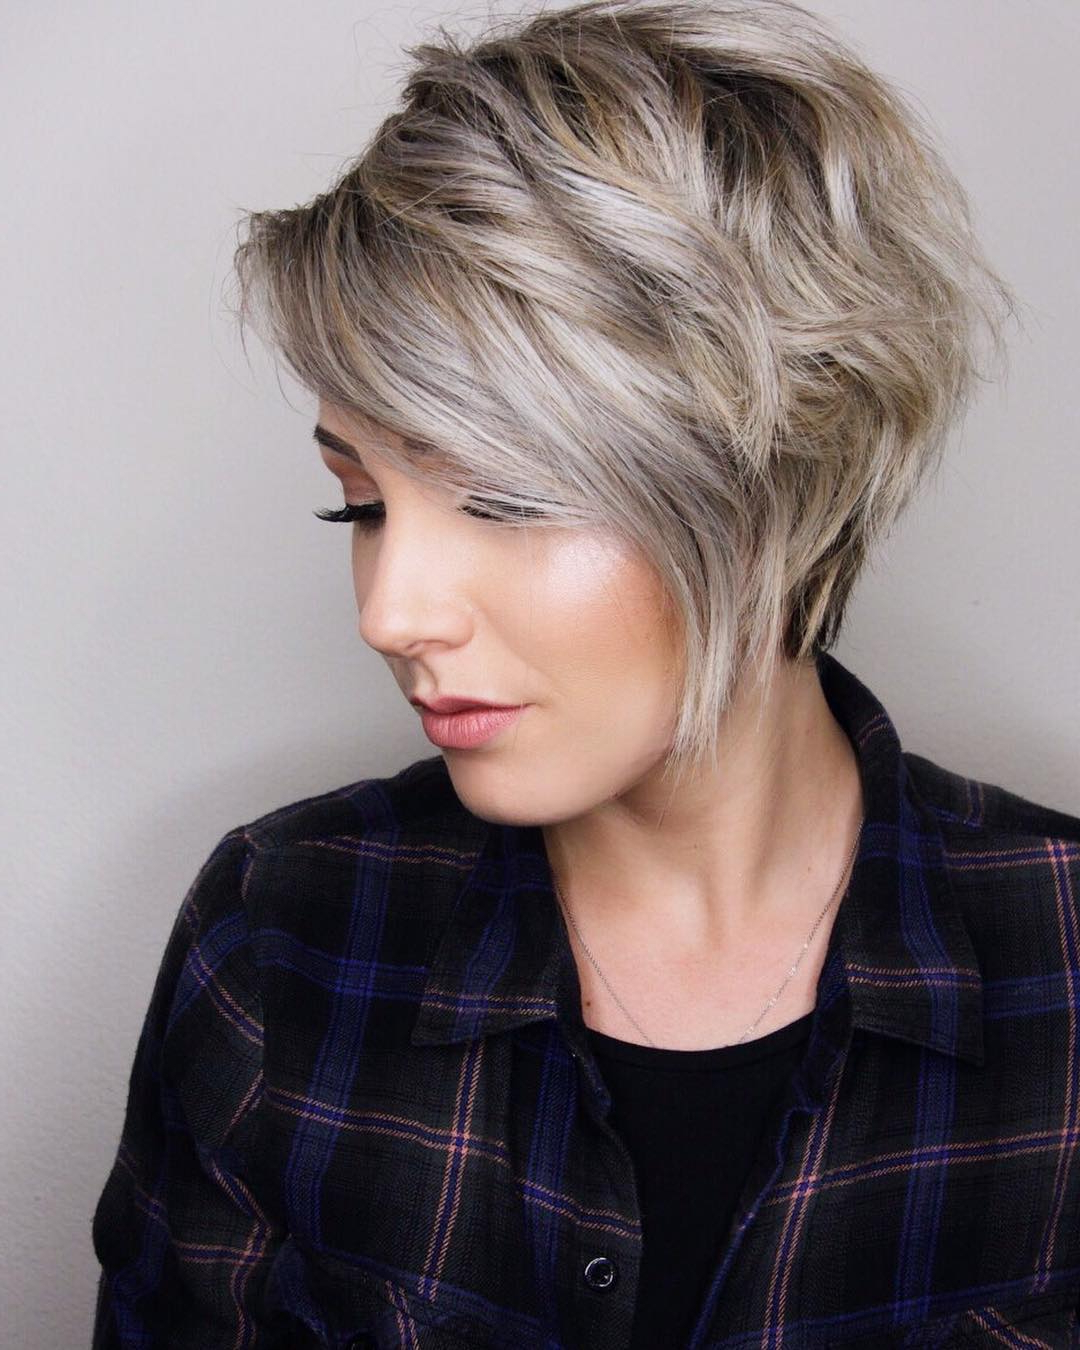 10 Trendy Layered Short Haircut Ideas For 2017 2018 – 'extra In Layered Tapered Pixie Hairstyles For Thick Hair (View 10 of 20)